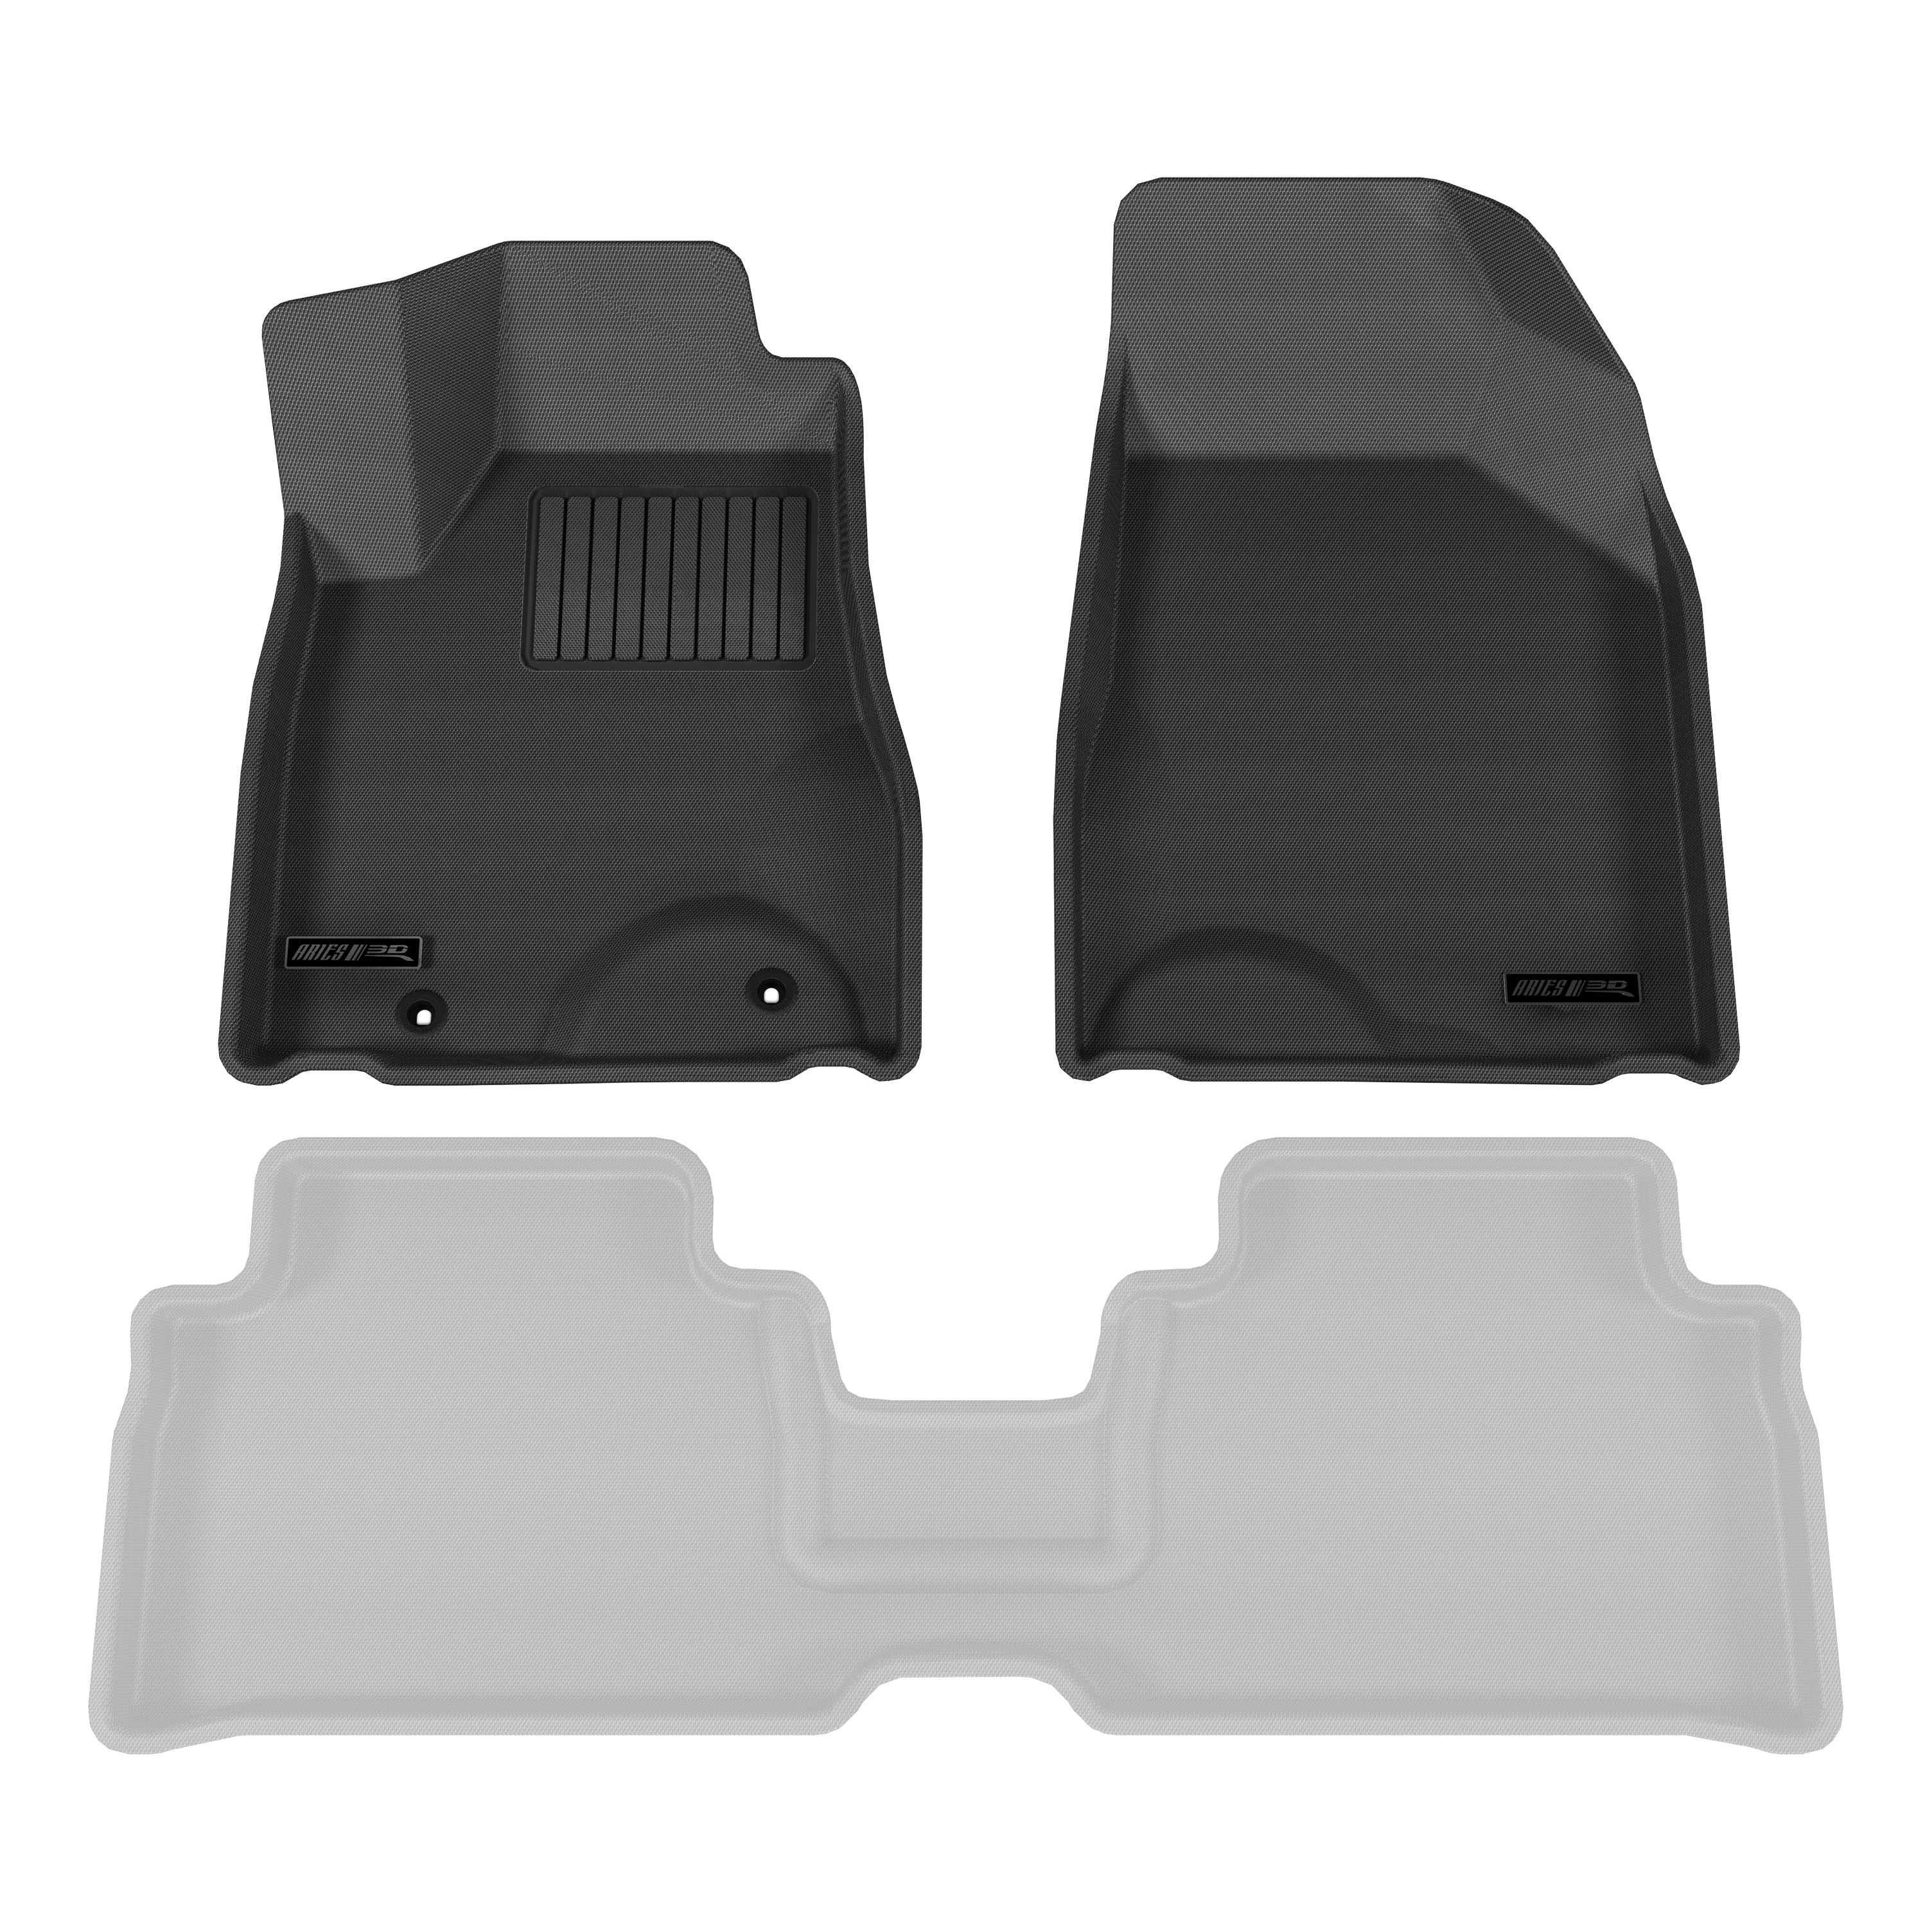 Lexus Rx350 Floor Mats: Aries LX01011509 Black Front Floor Mat Liner For Lexus